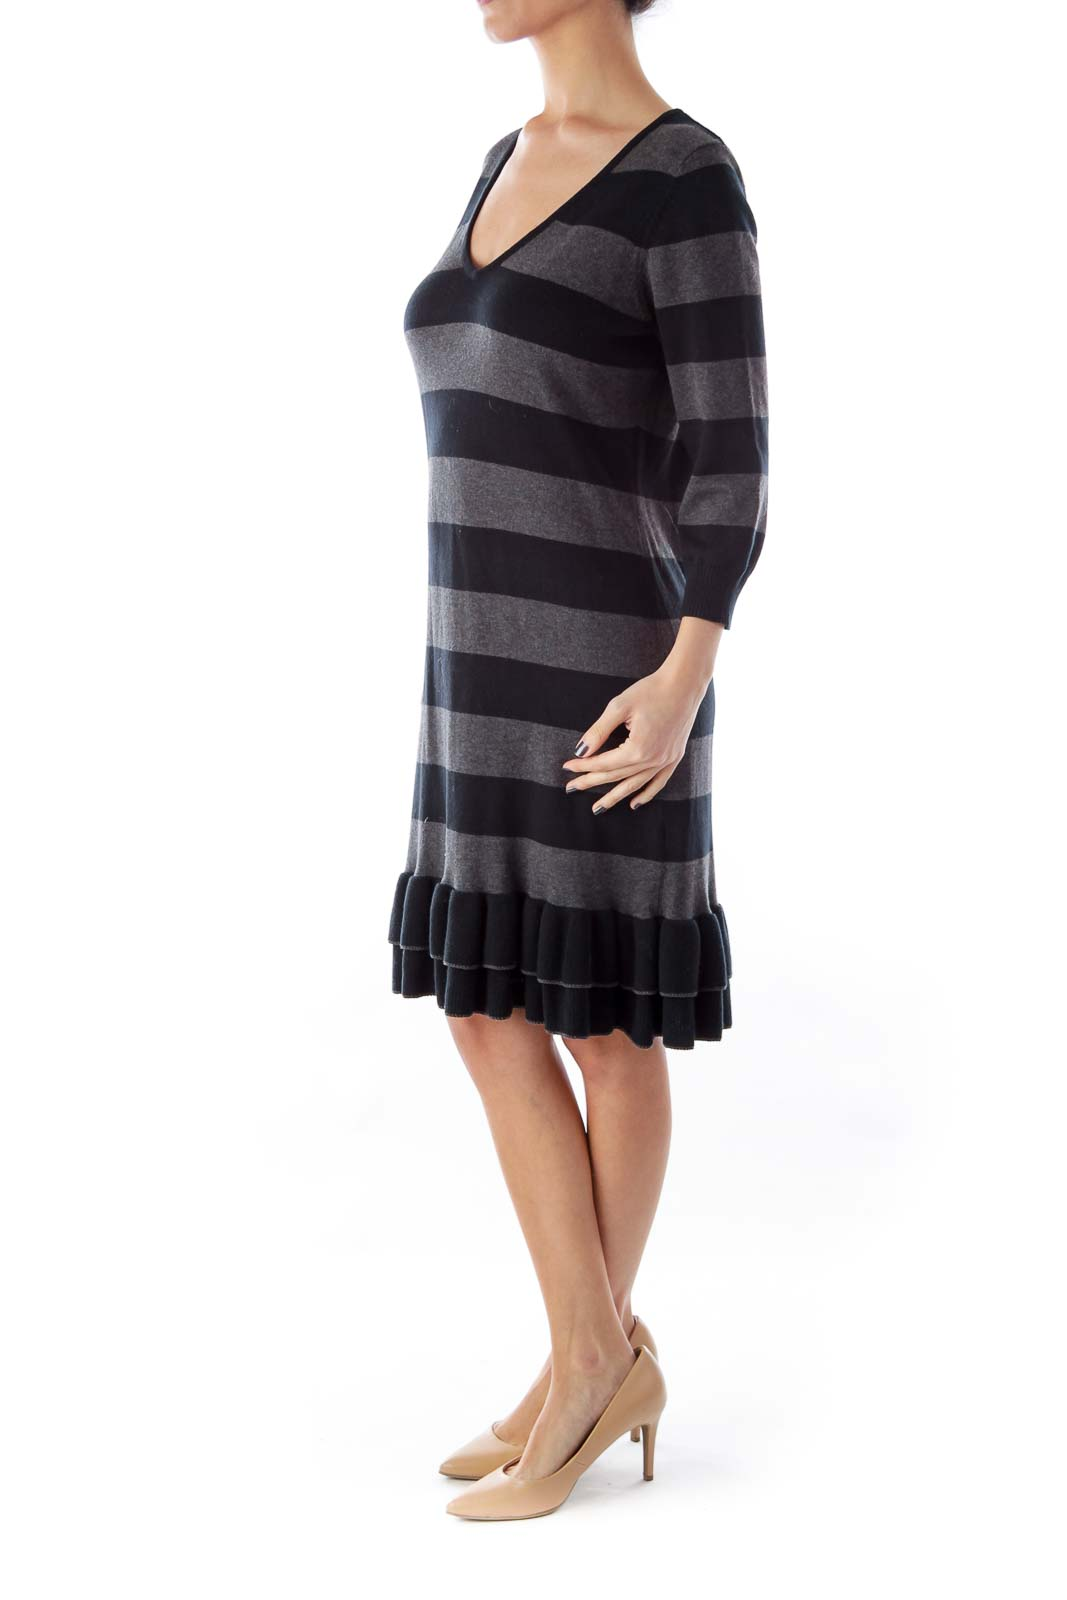 Black & Gray Stripe Knit Dress